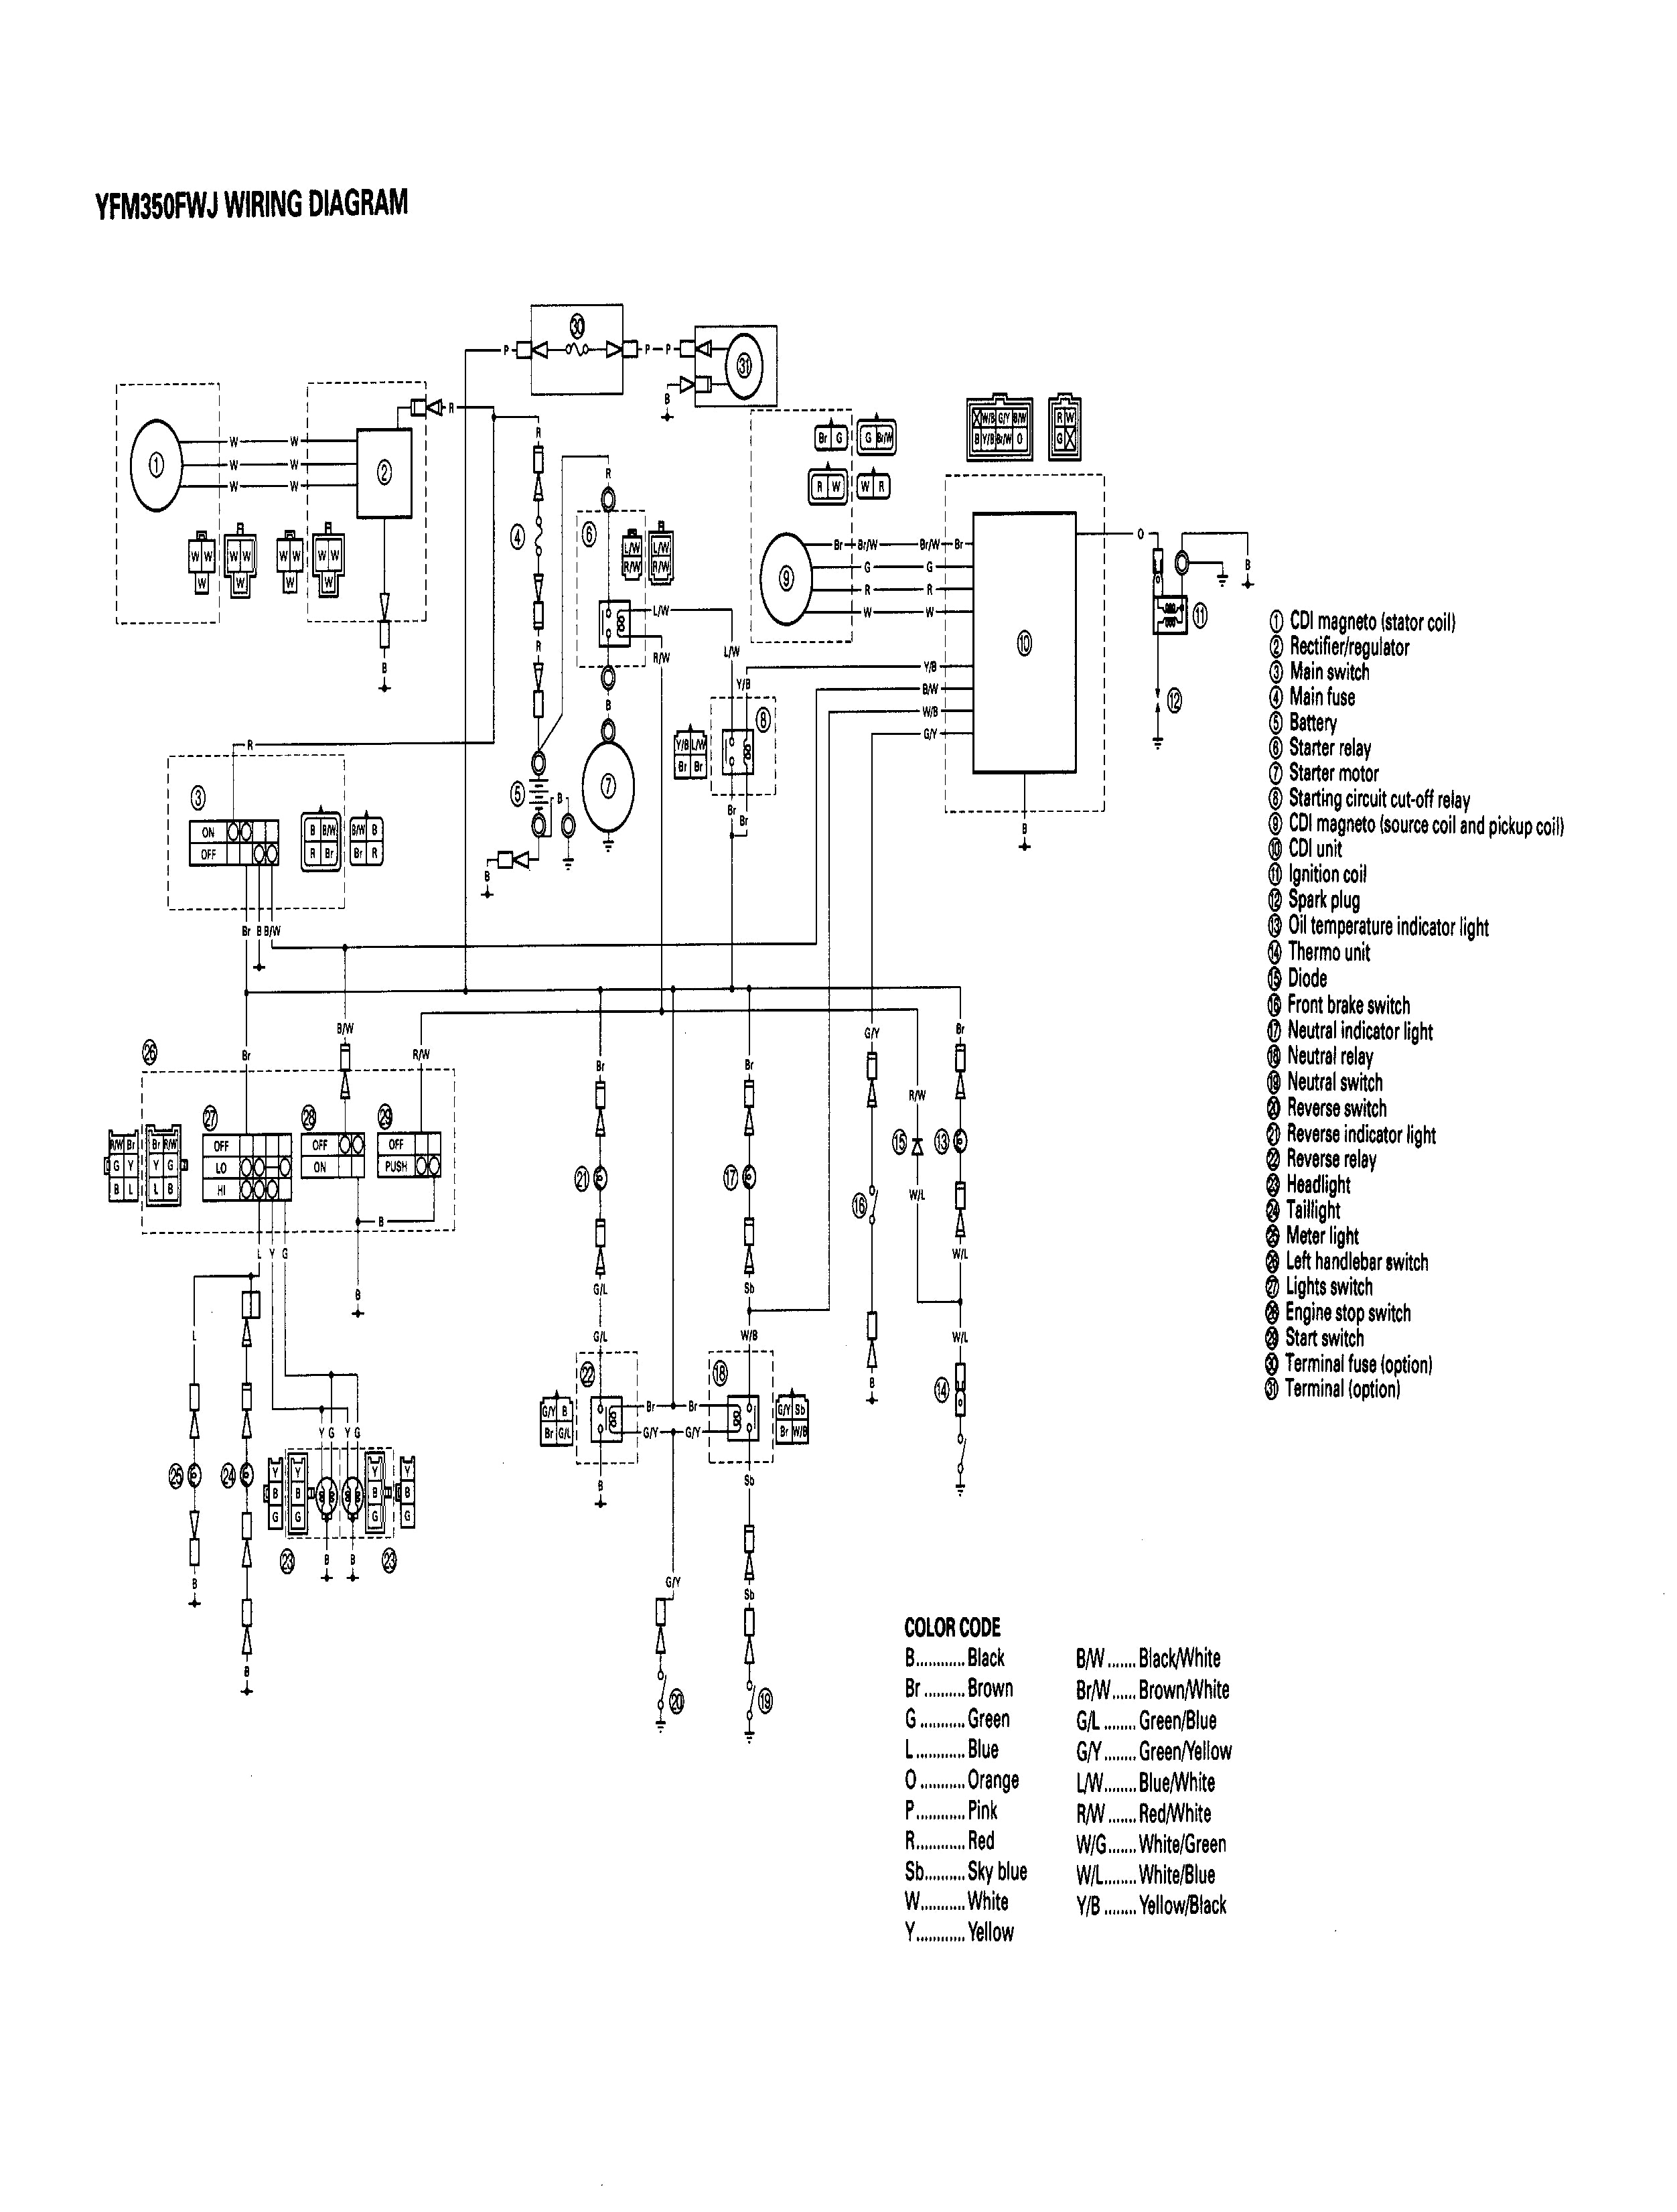 96 Chevy Kodiak Wiring Diagram